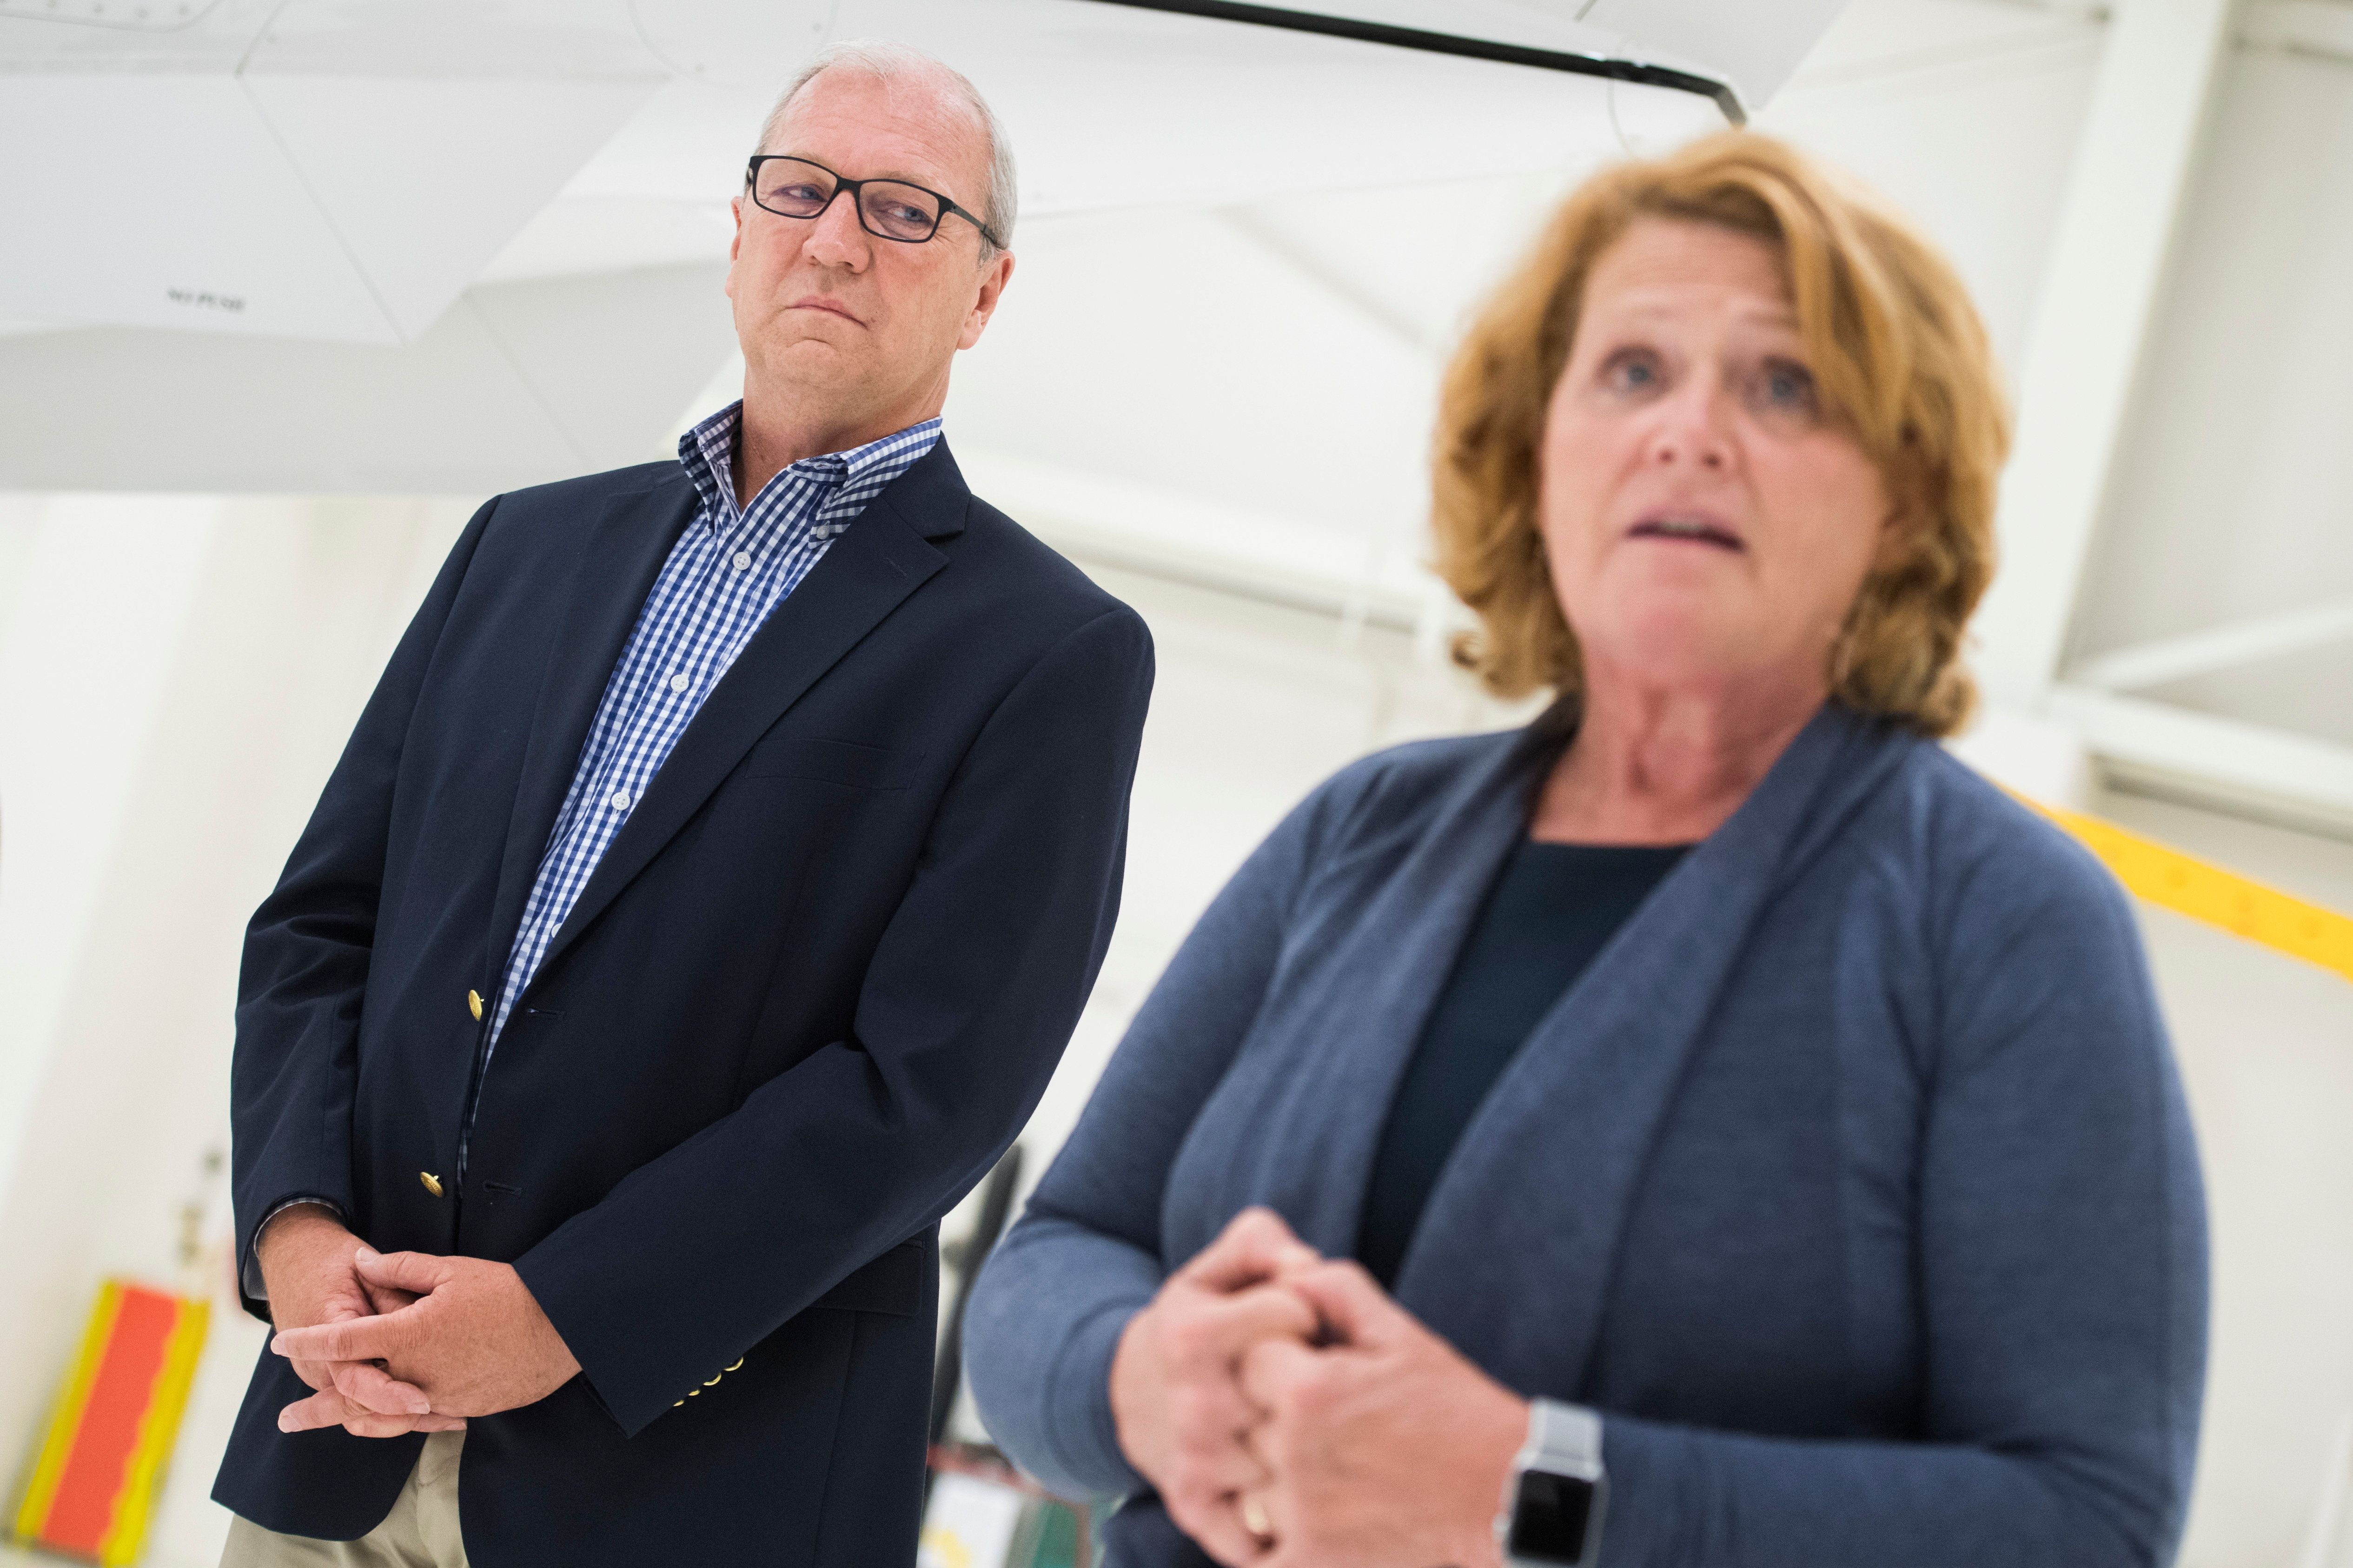 Sen. Heidi Heitkamp (D-N.D.) and her GOP challenger in November's election, Rep. Kevin Cramer, are seen at an event in their